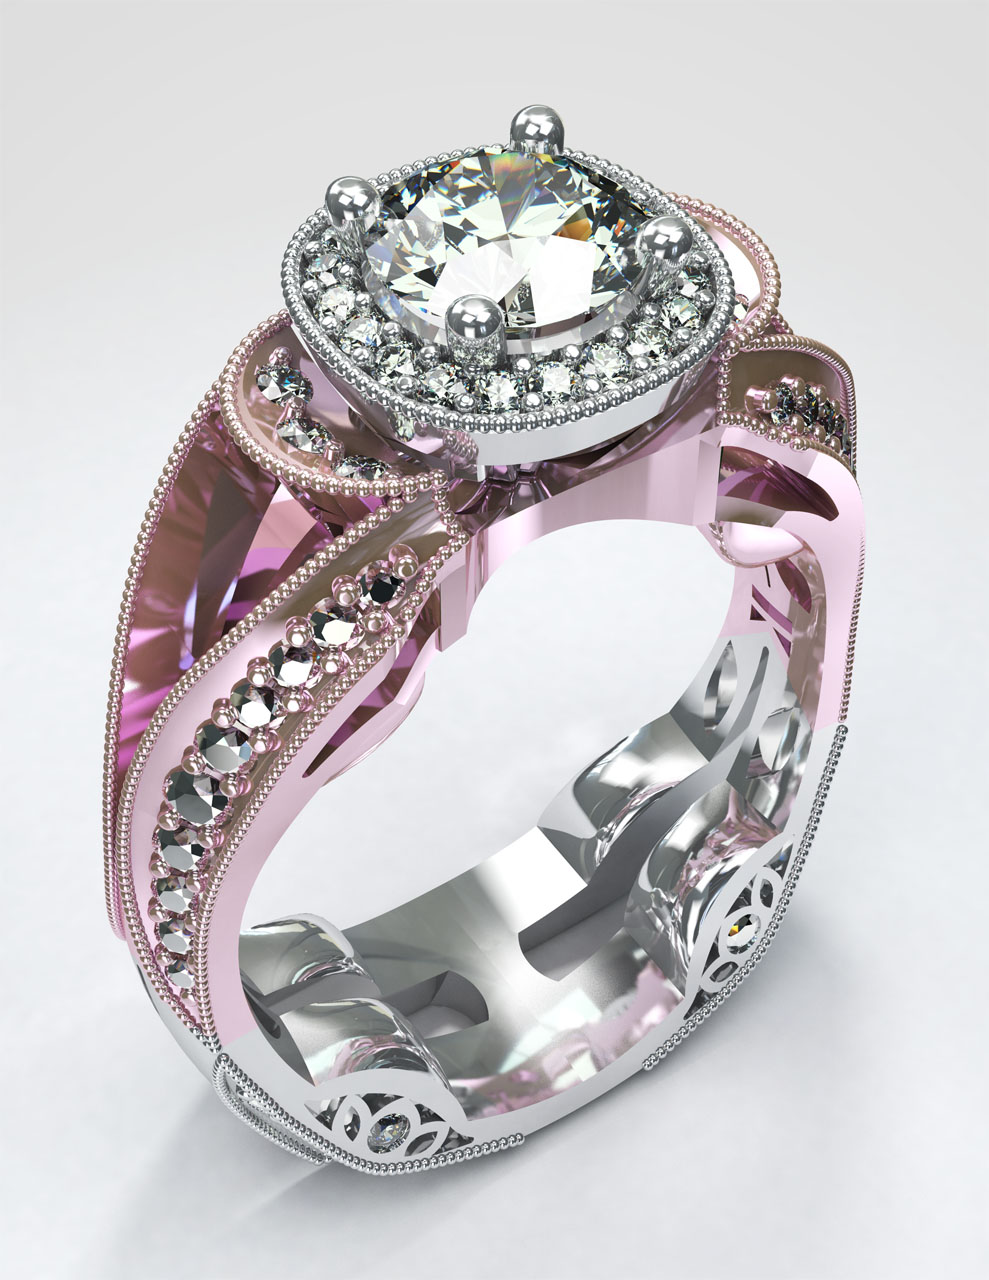 Rendering of a unique solitaire ring with a rose gold upper half and white gold lower half, with many small highlighting diamonds on its periphery.